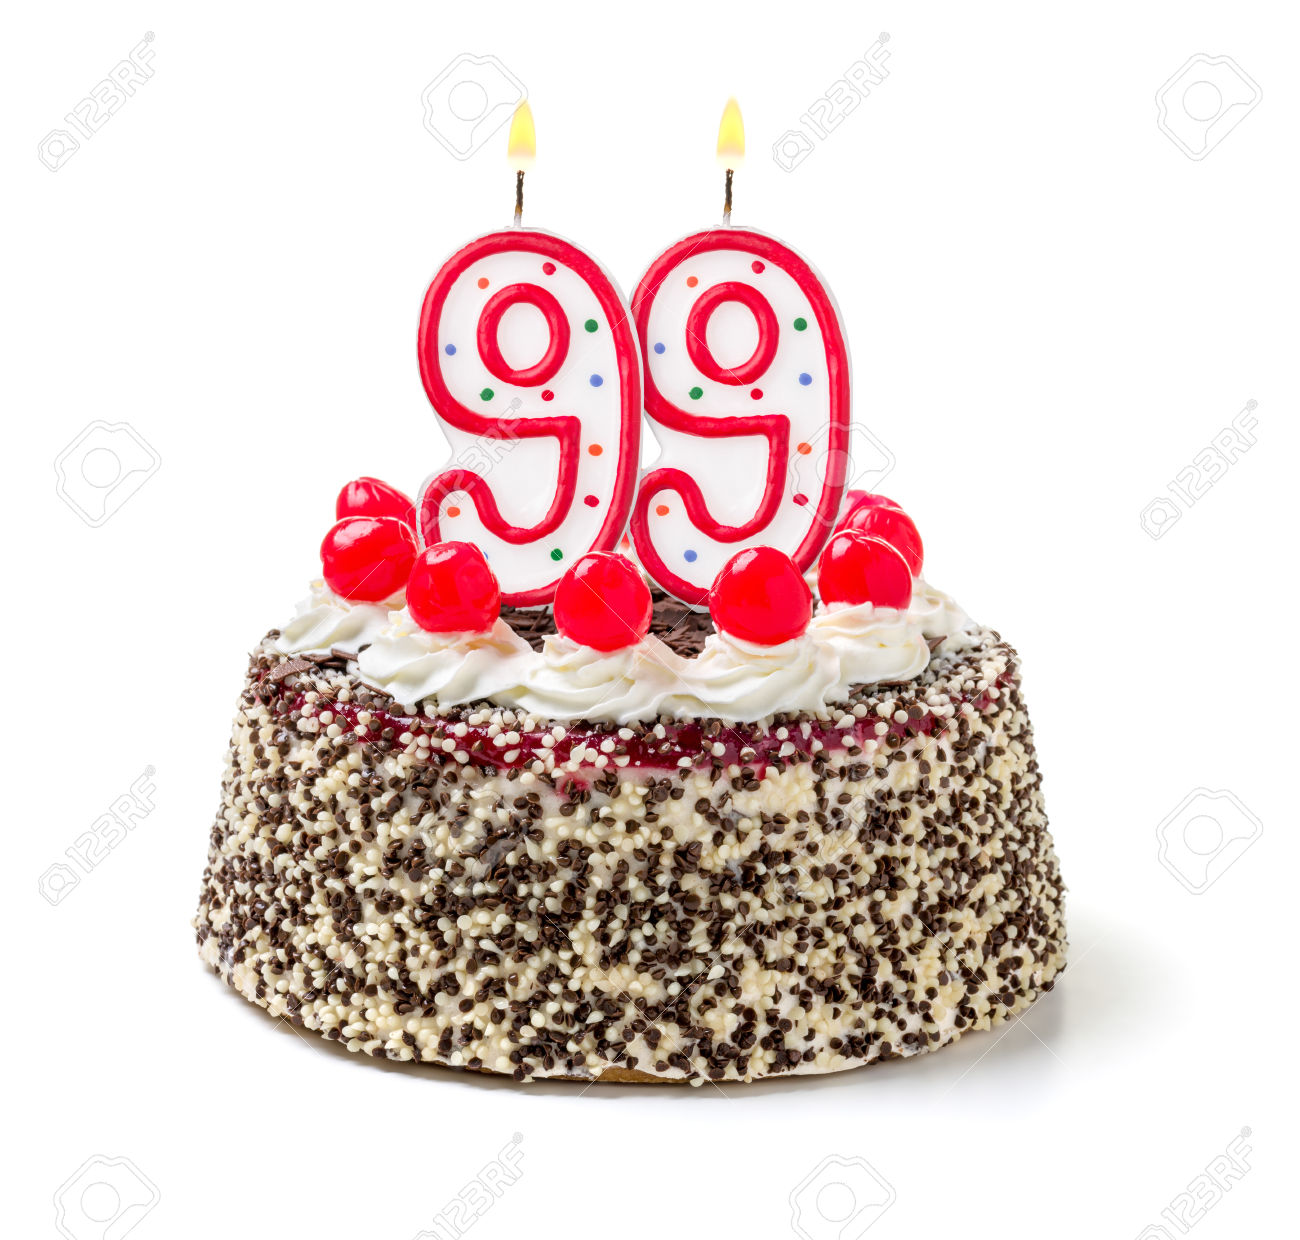 Happy Birthday Cake With Candles Gif